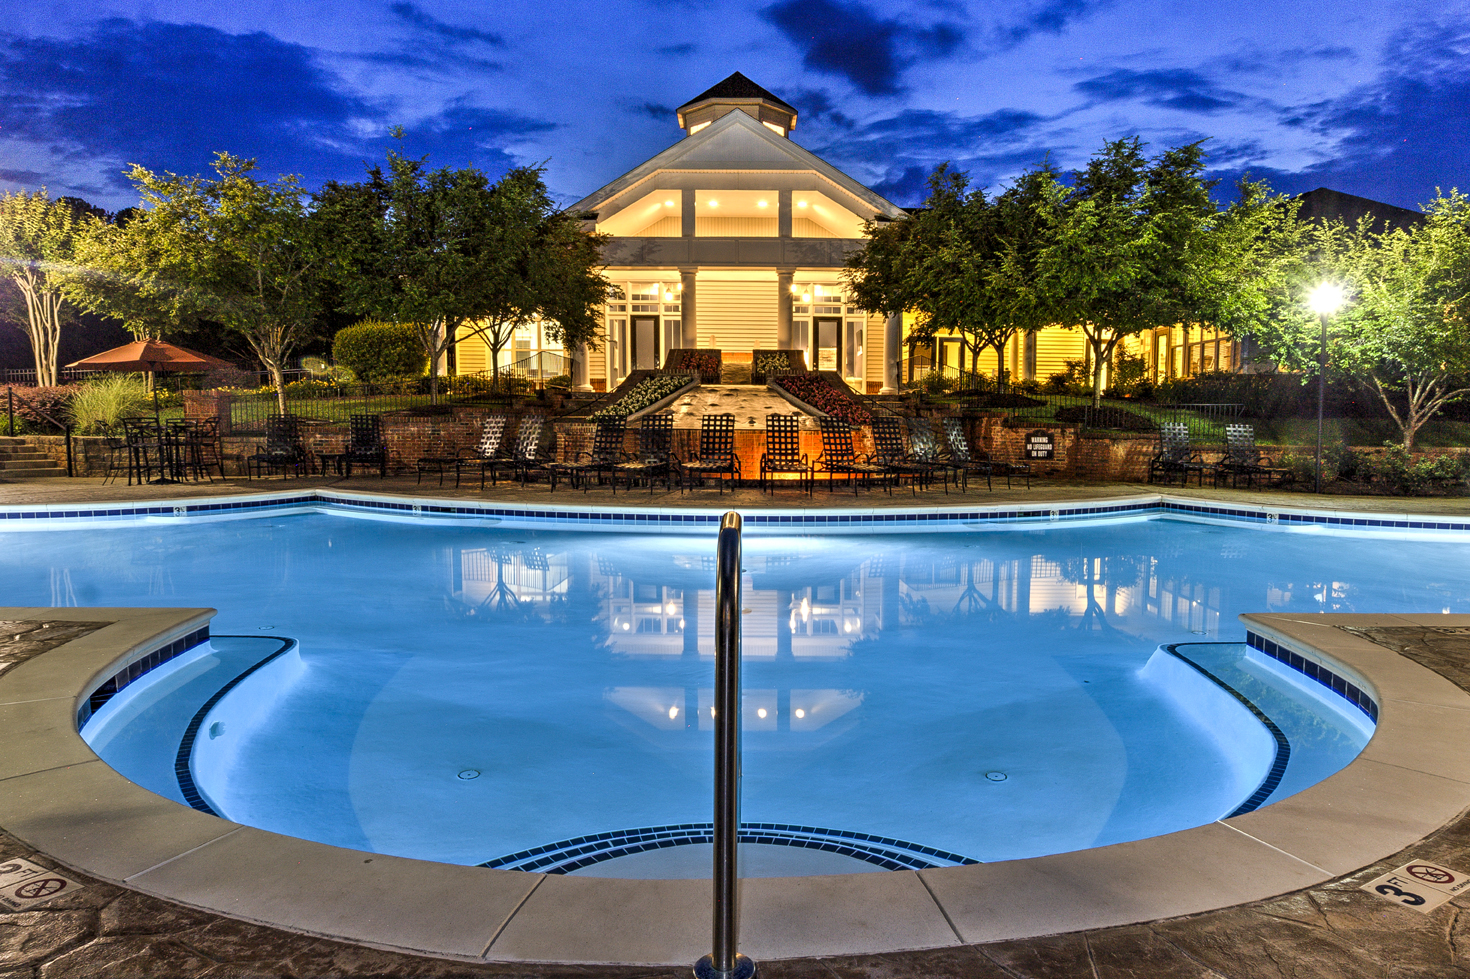 Top Pool Safety Tips